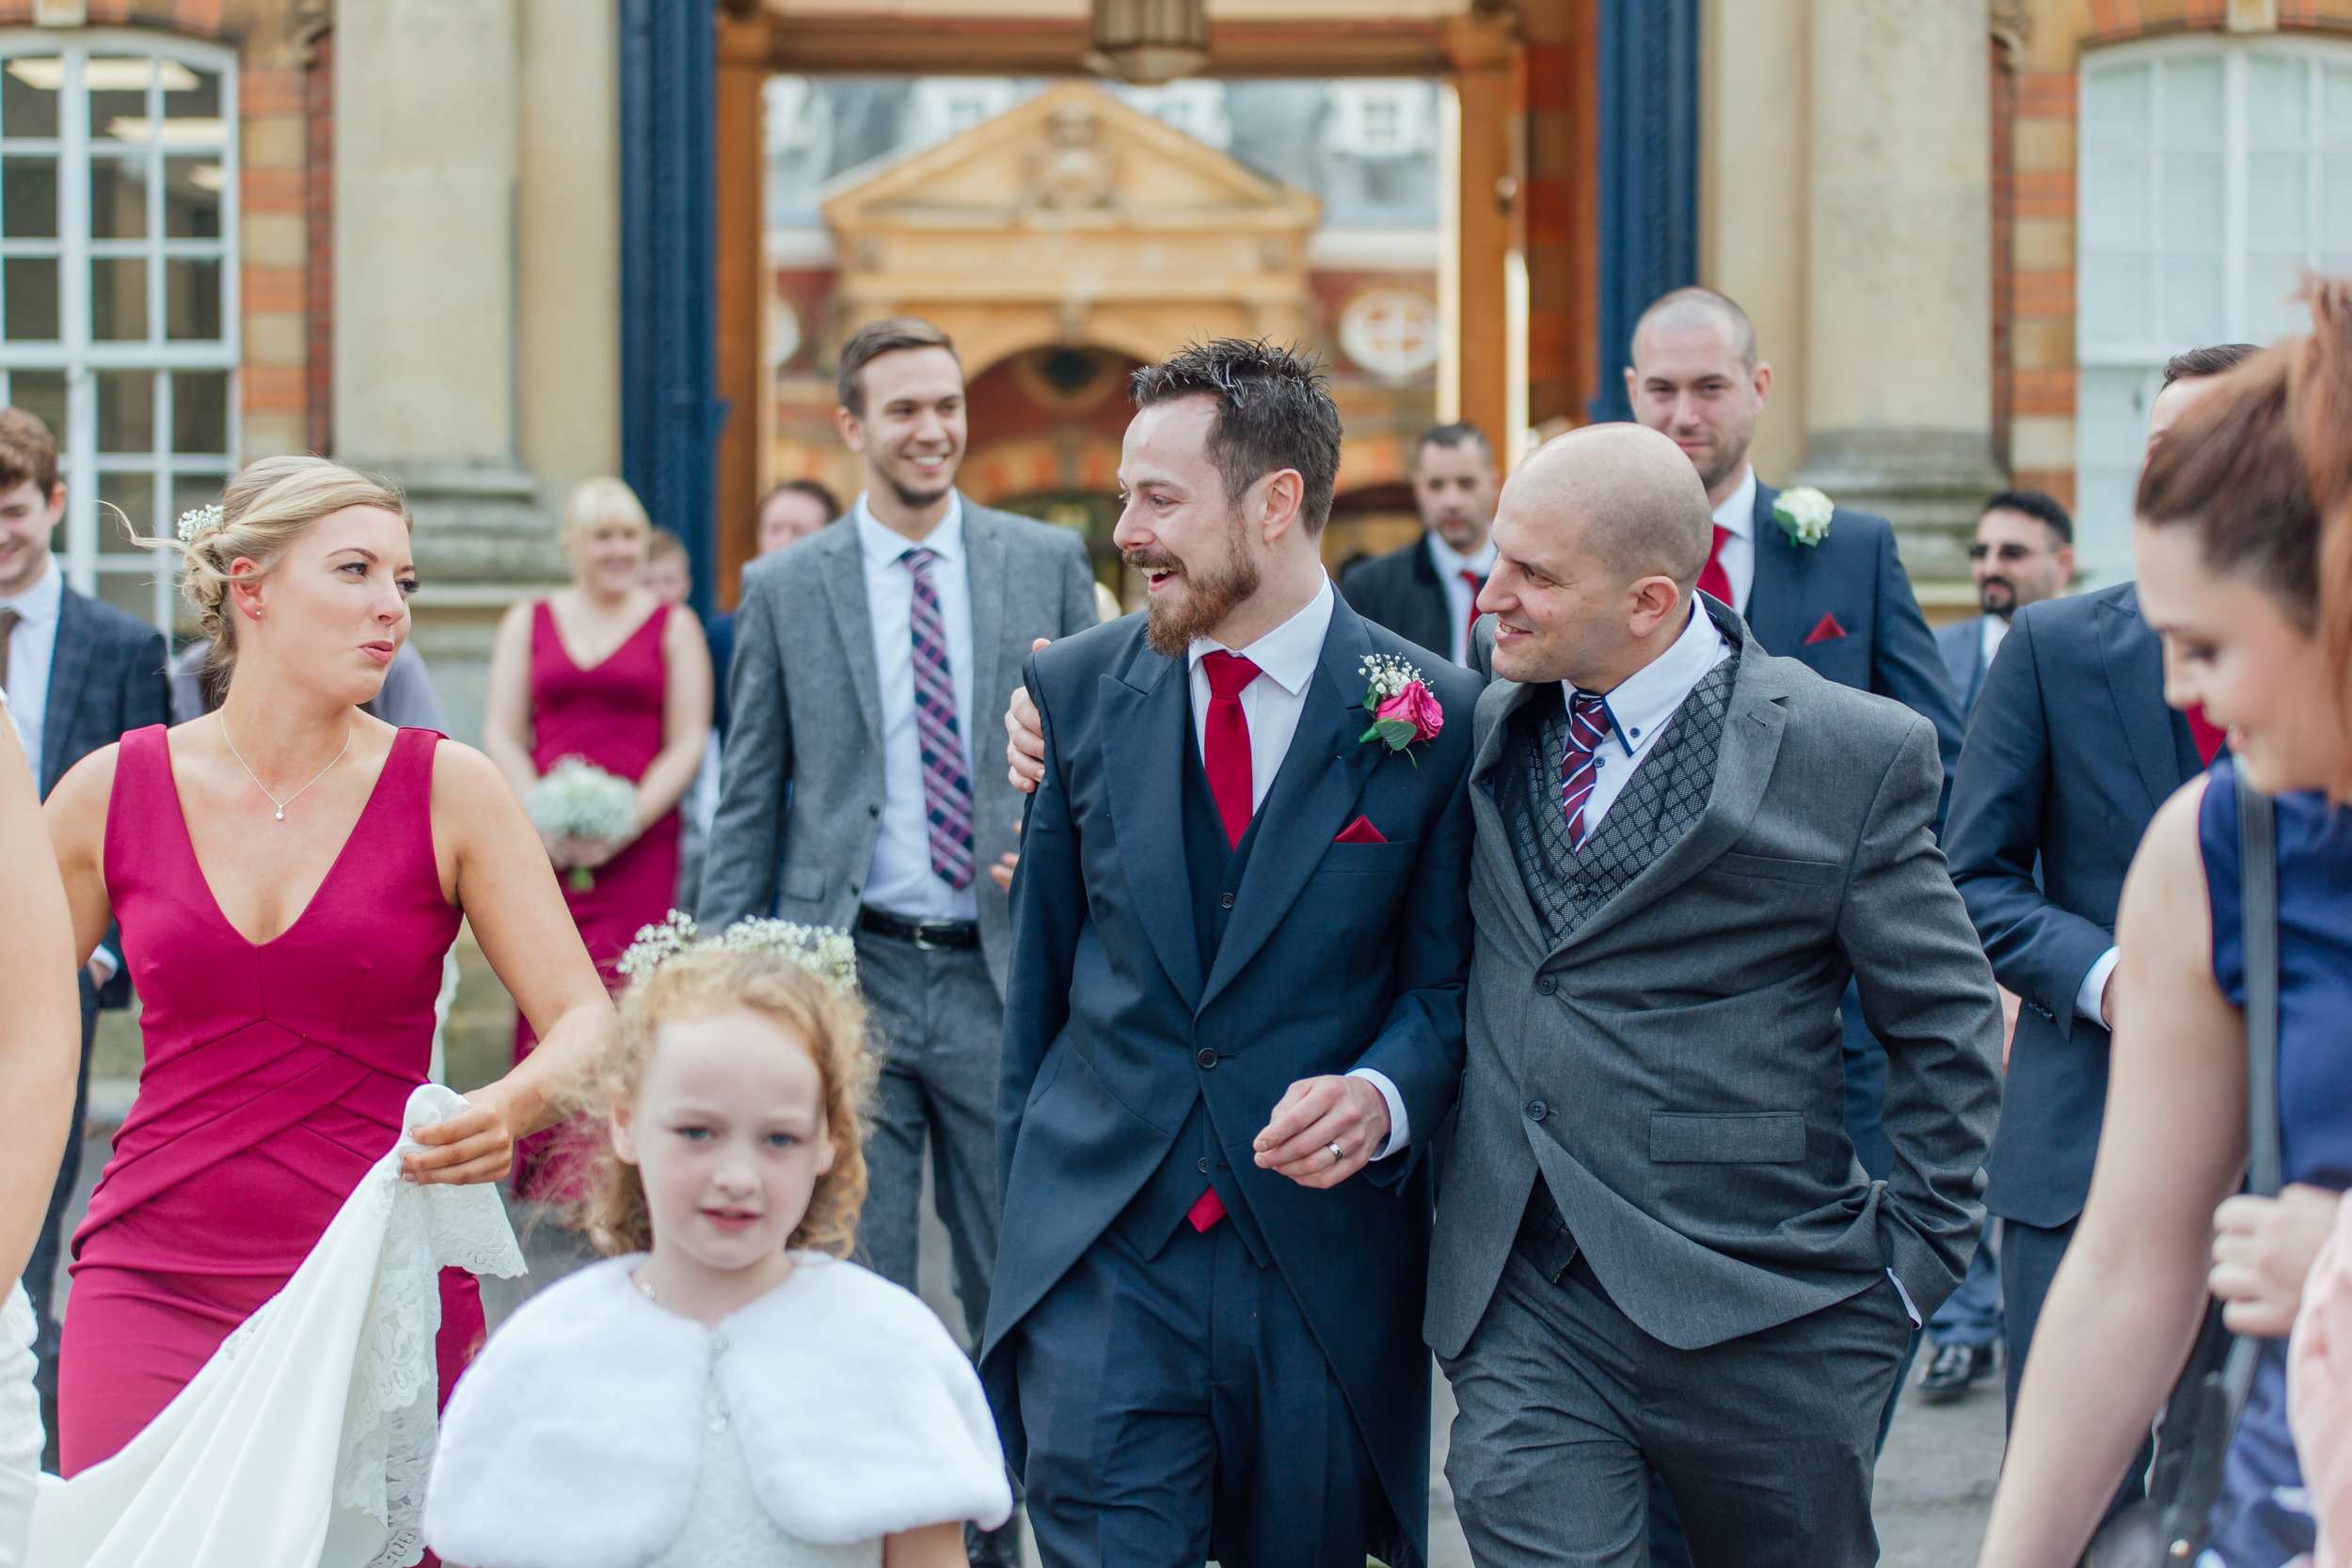 Hampshire-wedding-photographer-hampshire : fleet-wedding-photogrpher-farnborough : wellington-college-wedding : amy-james-photography : -383.jpg